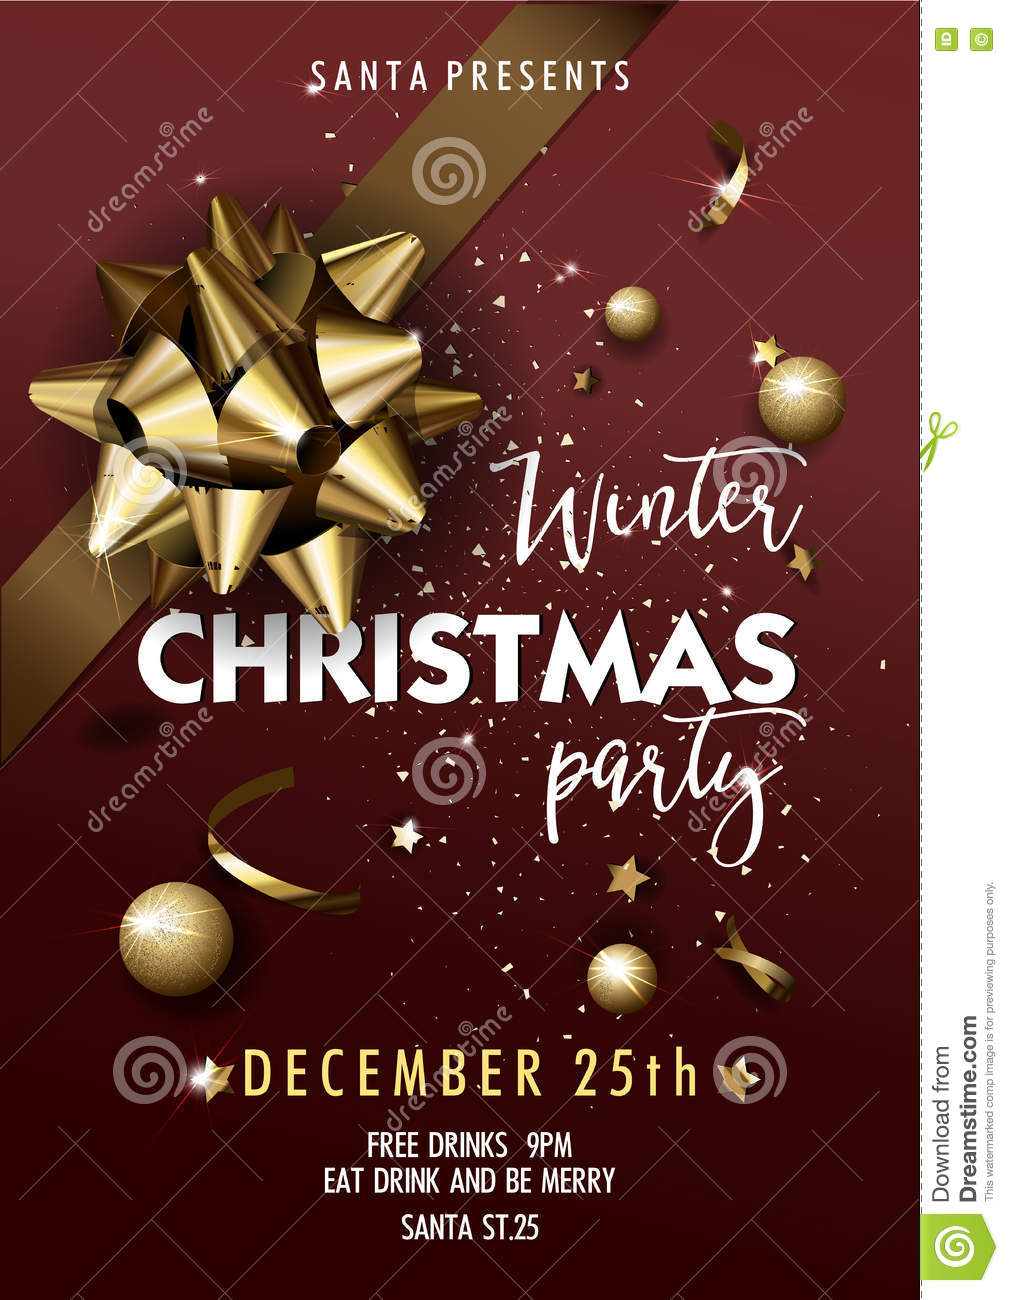 Free holiday party invitation maker picture ideas references free holiday party invitation maker merry christmas party layout poster template stopboris Image collections